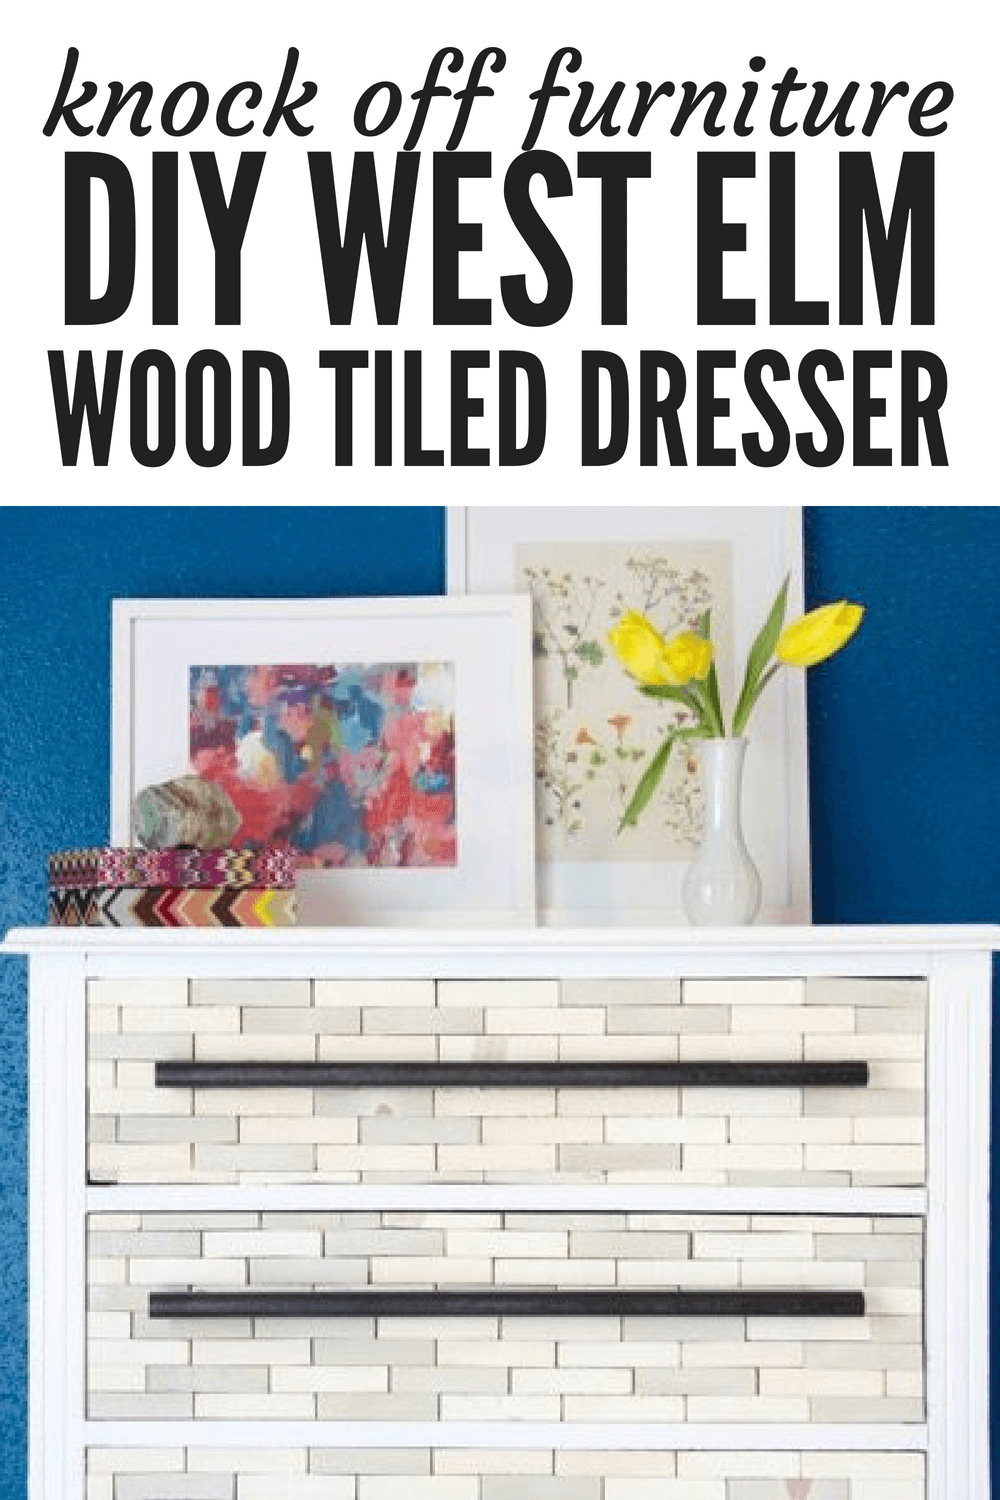 diy furniture project - west elm knock off